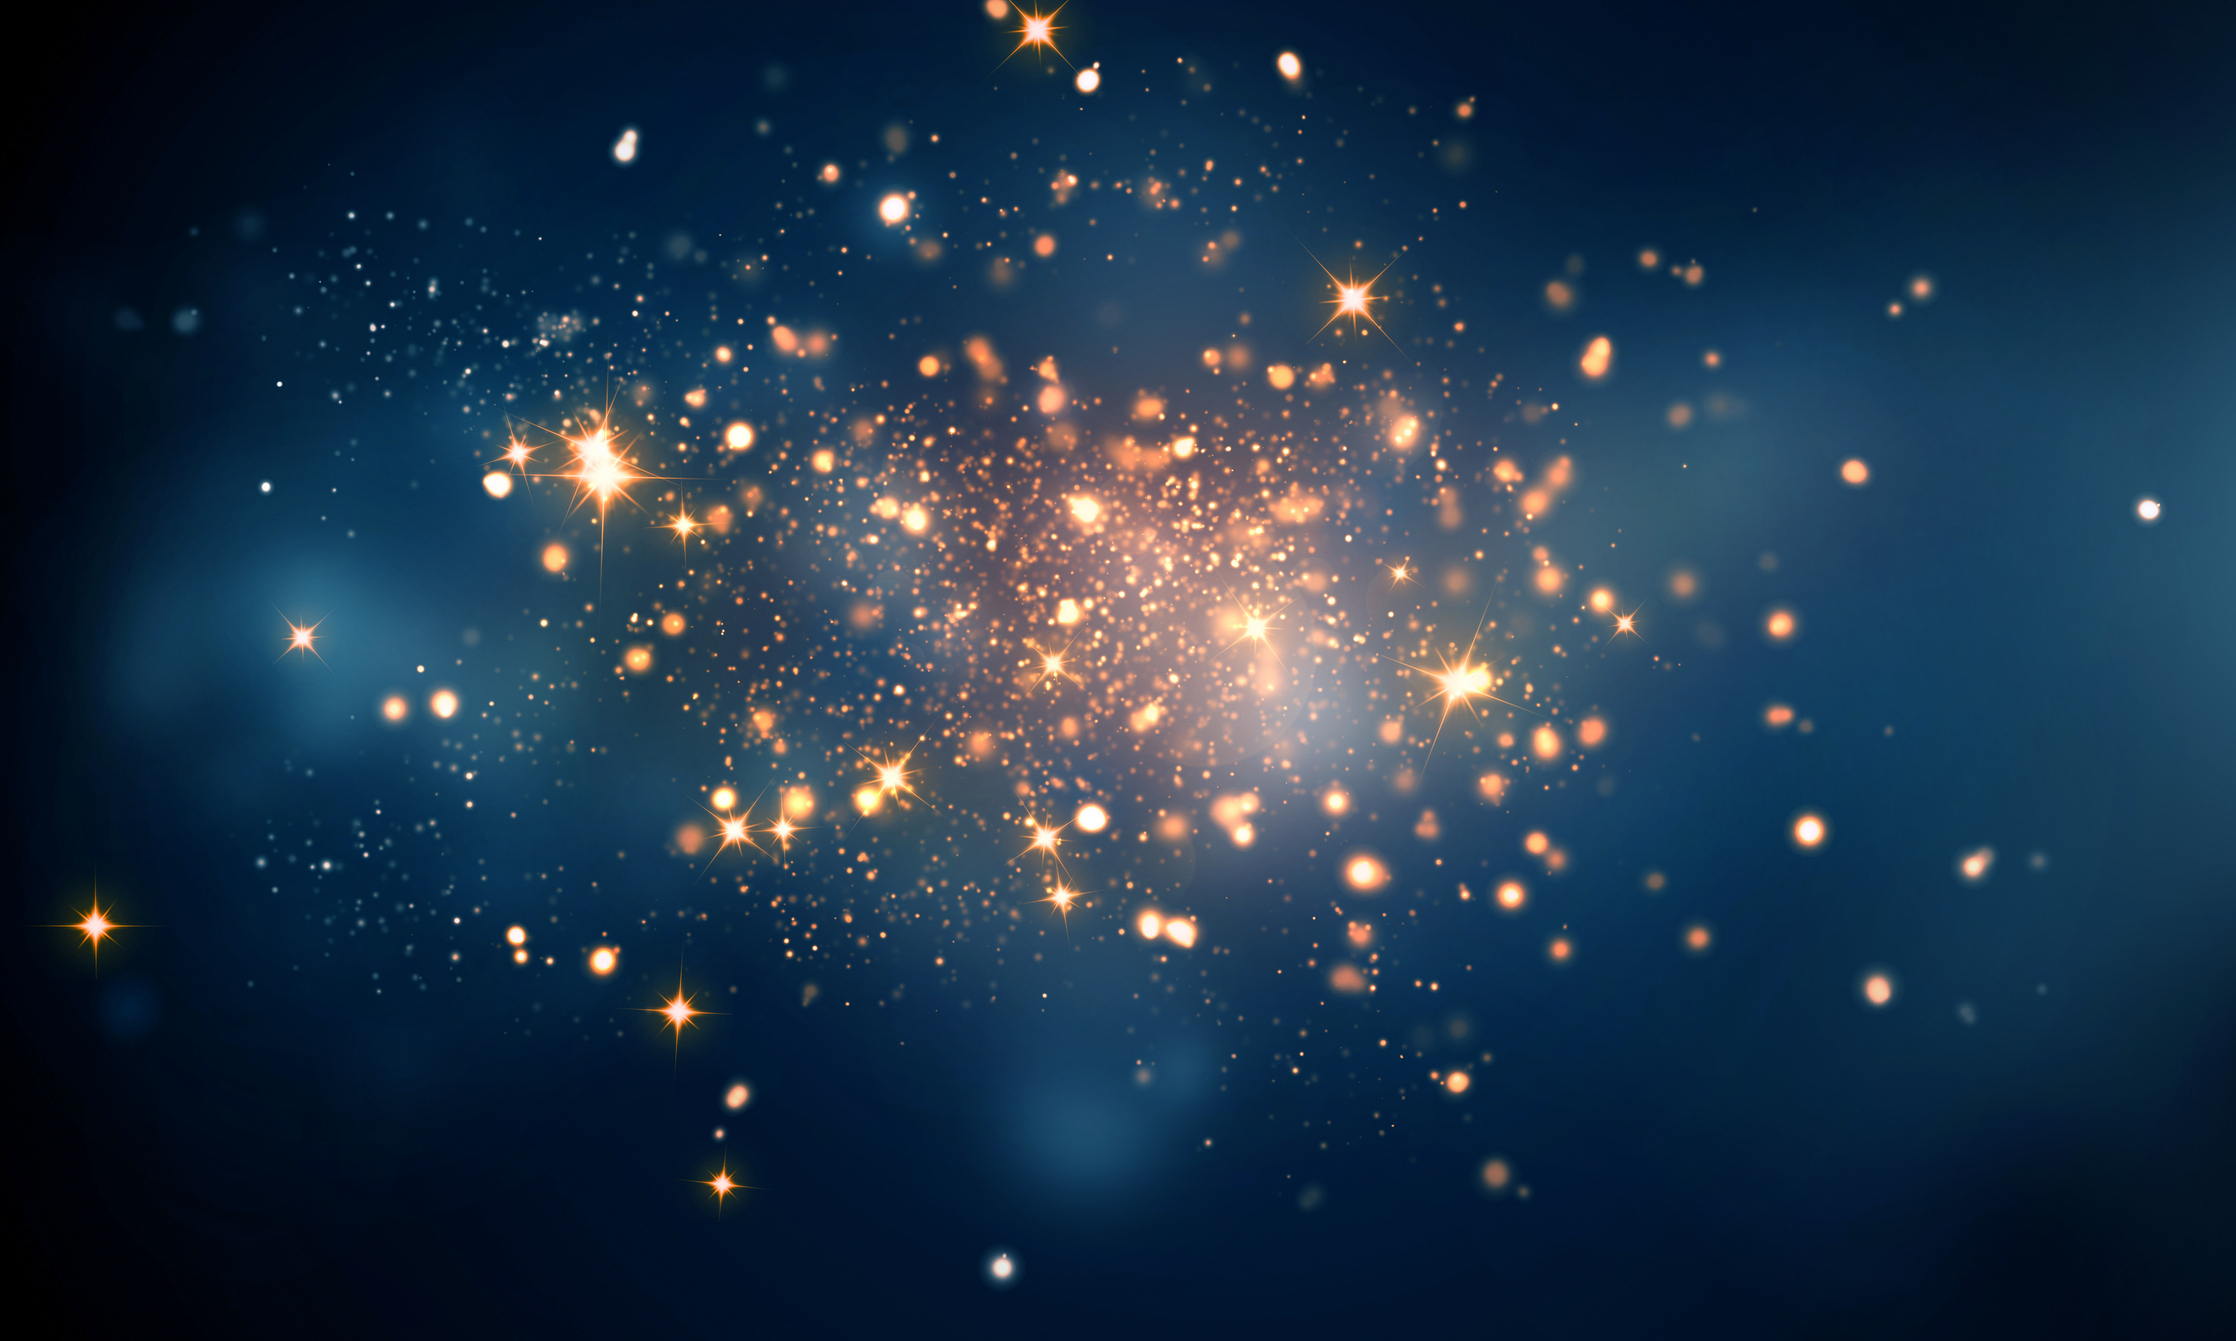 Does light escape the Universe when it is expanding or contracting?